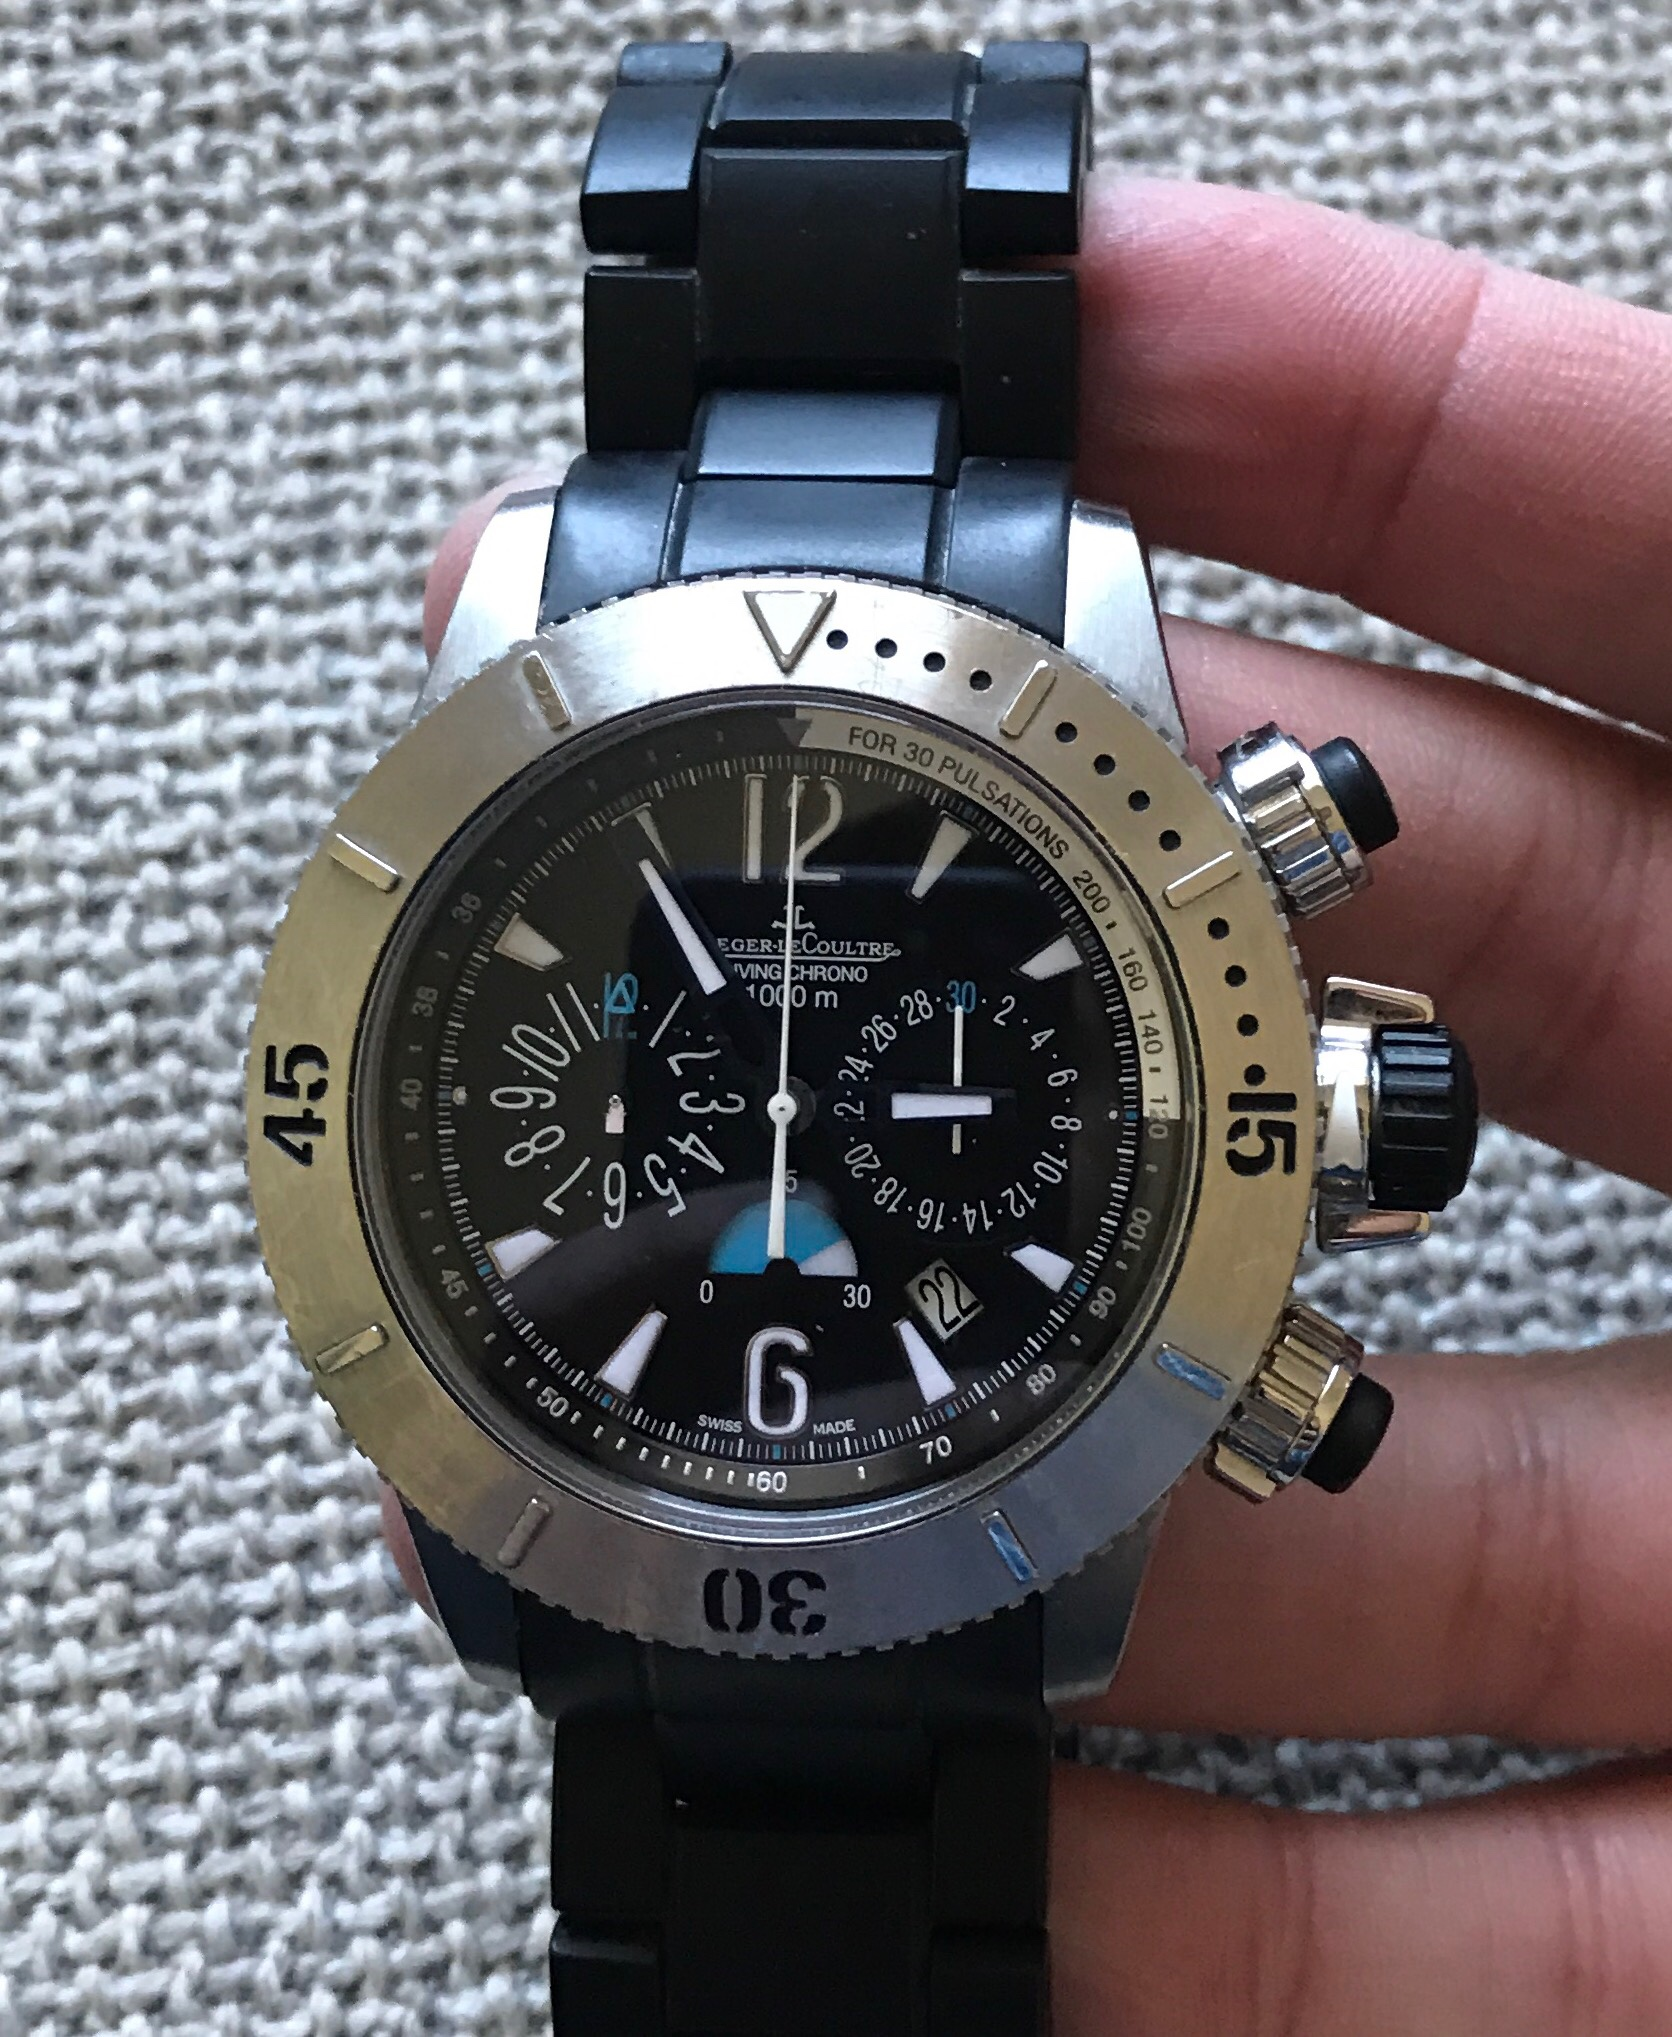 1a0511bfec2 FSOT - Jaeger Lecoultre Master Compressor Diving Chronograph - articulated  rubber bracelet